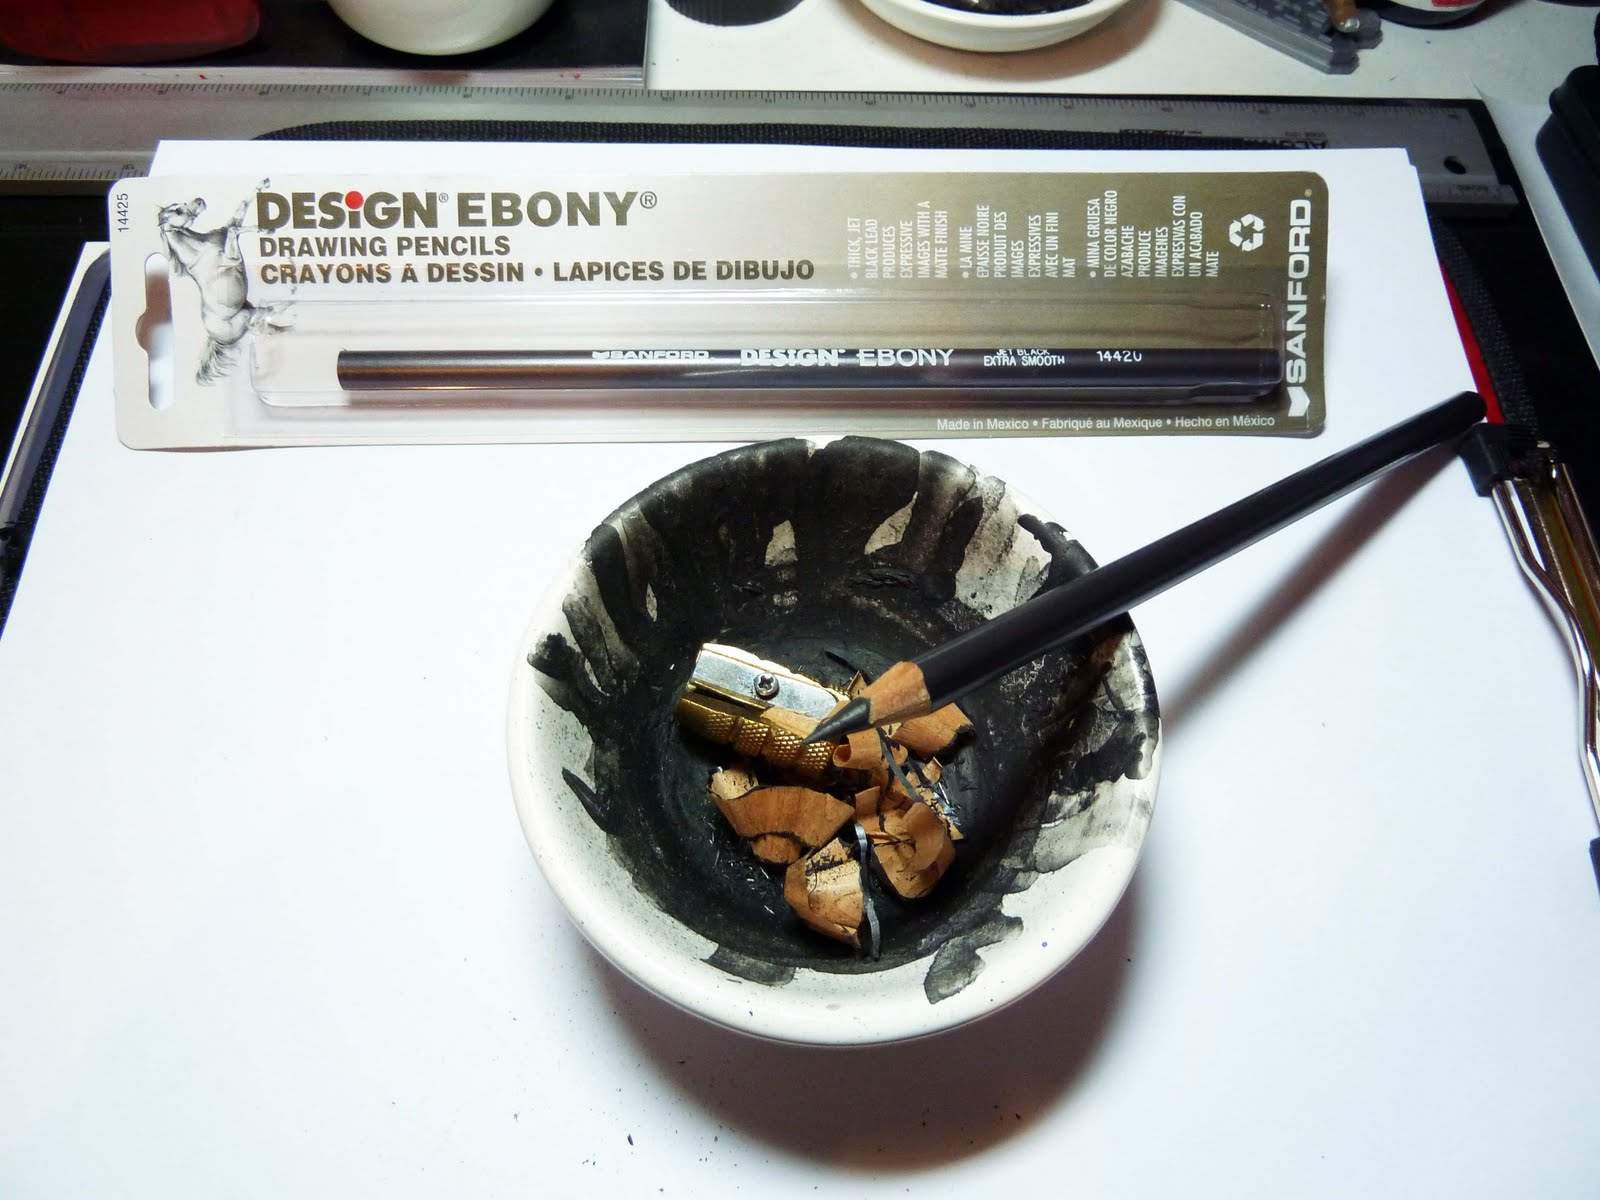 Sanford design ebony 14420 drawing pencil doodle tests and video